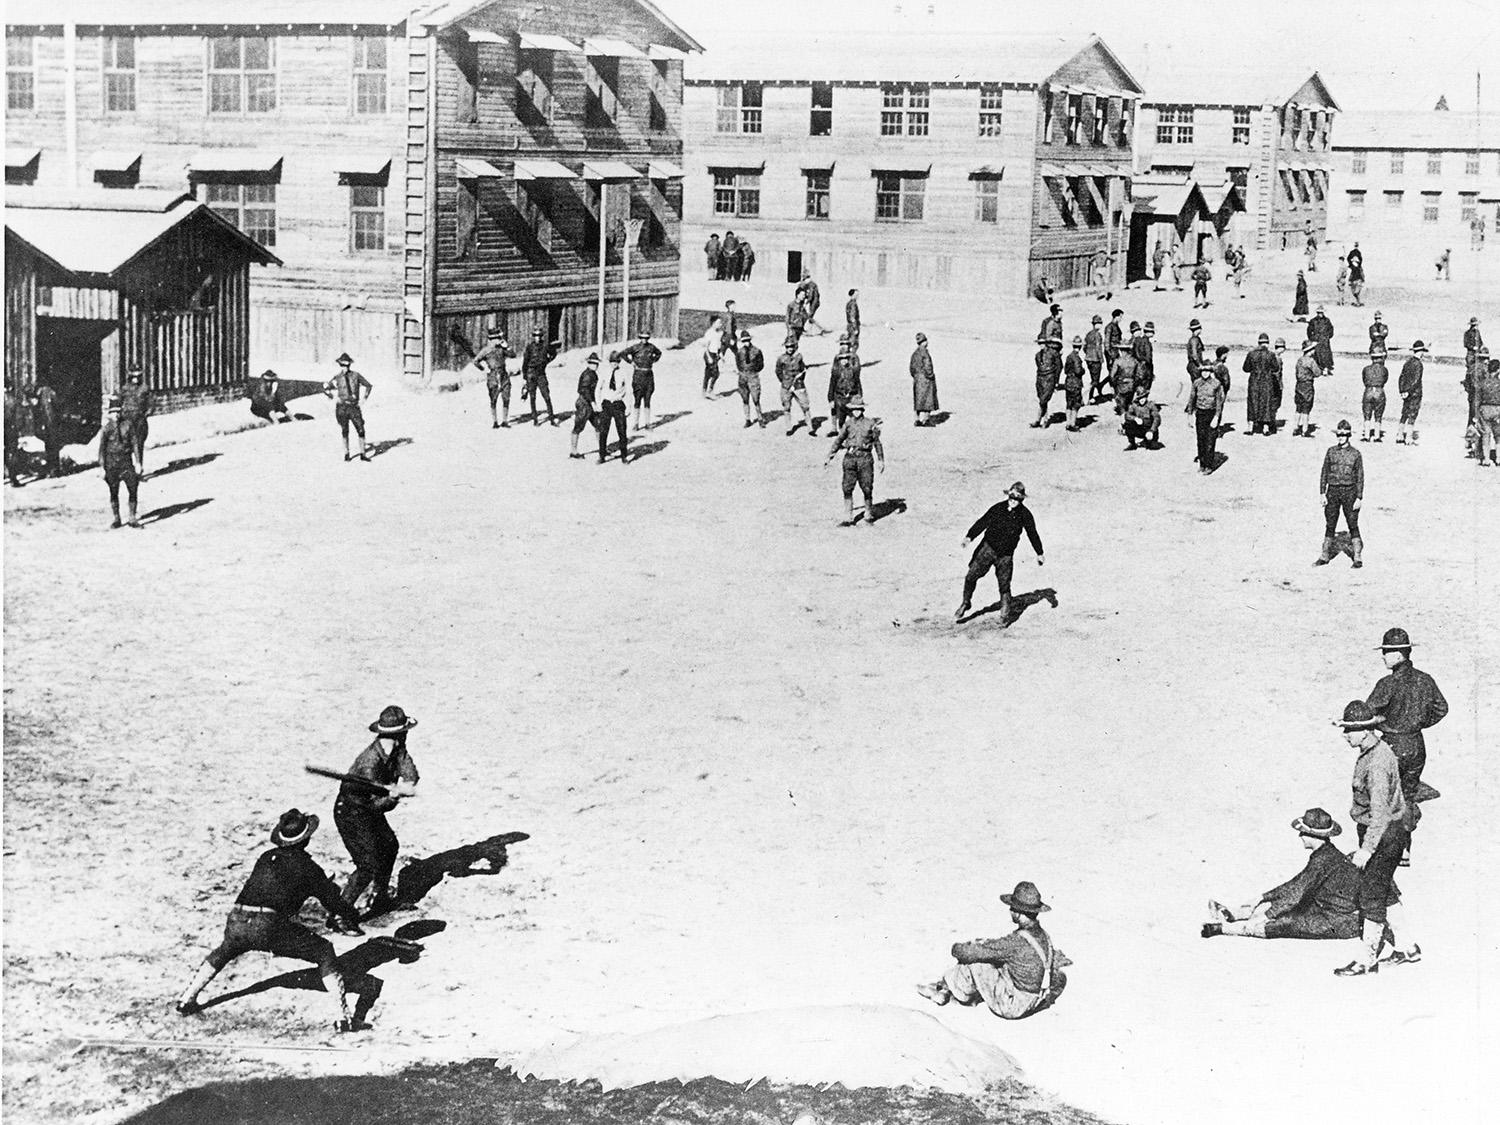 Pictured above, soldiers play recreational baseball during World War I. (National Baseball Hall of Fame and Museum)